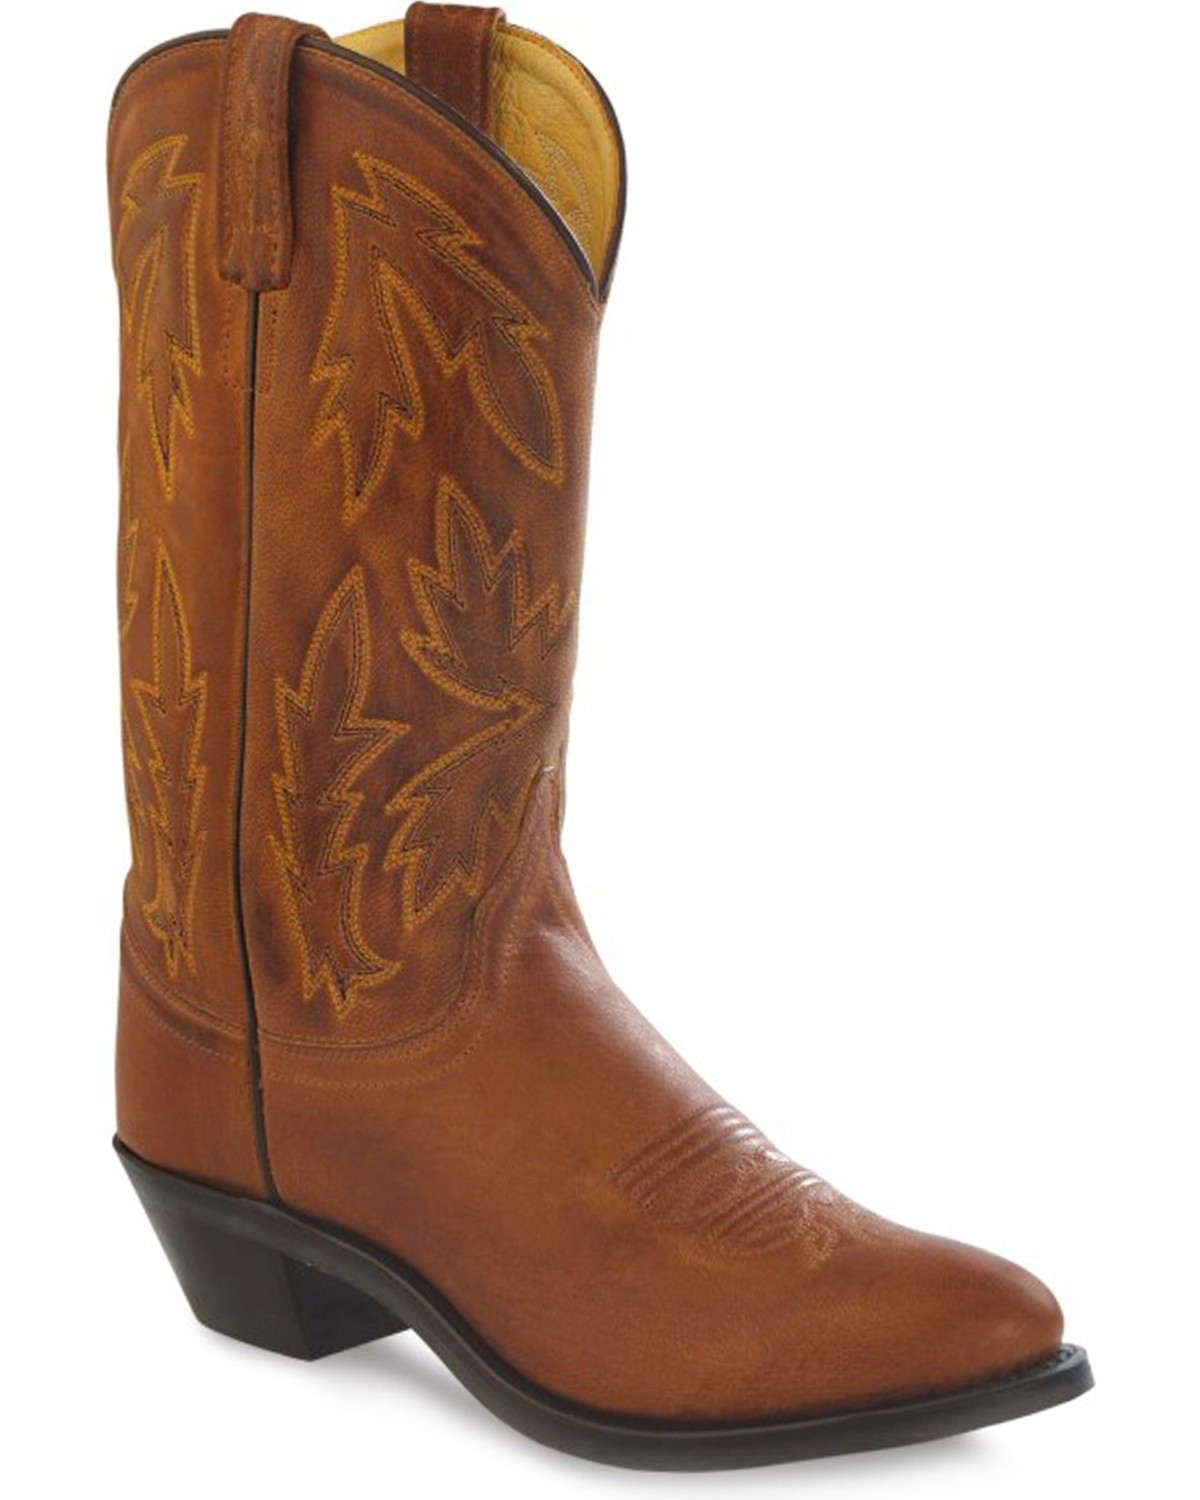 Women's Old West Boots - Sheplers